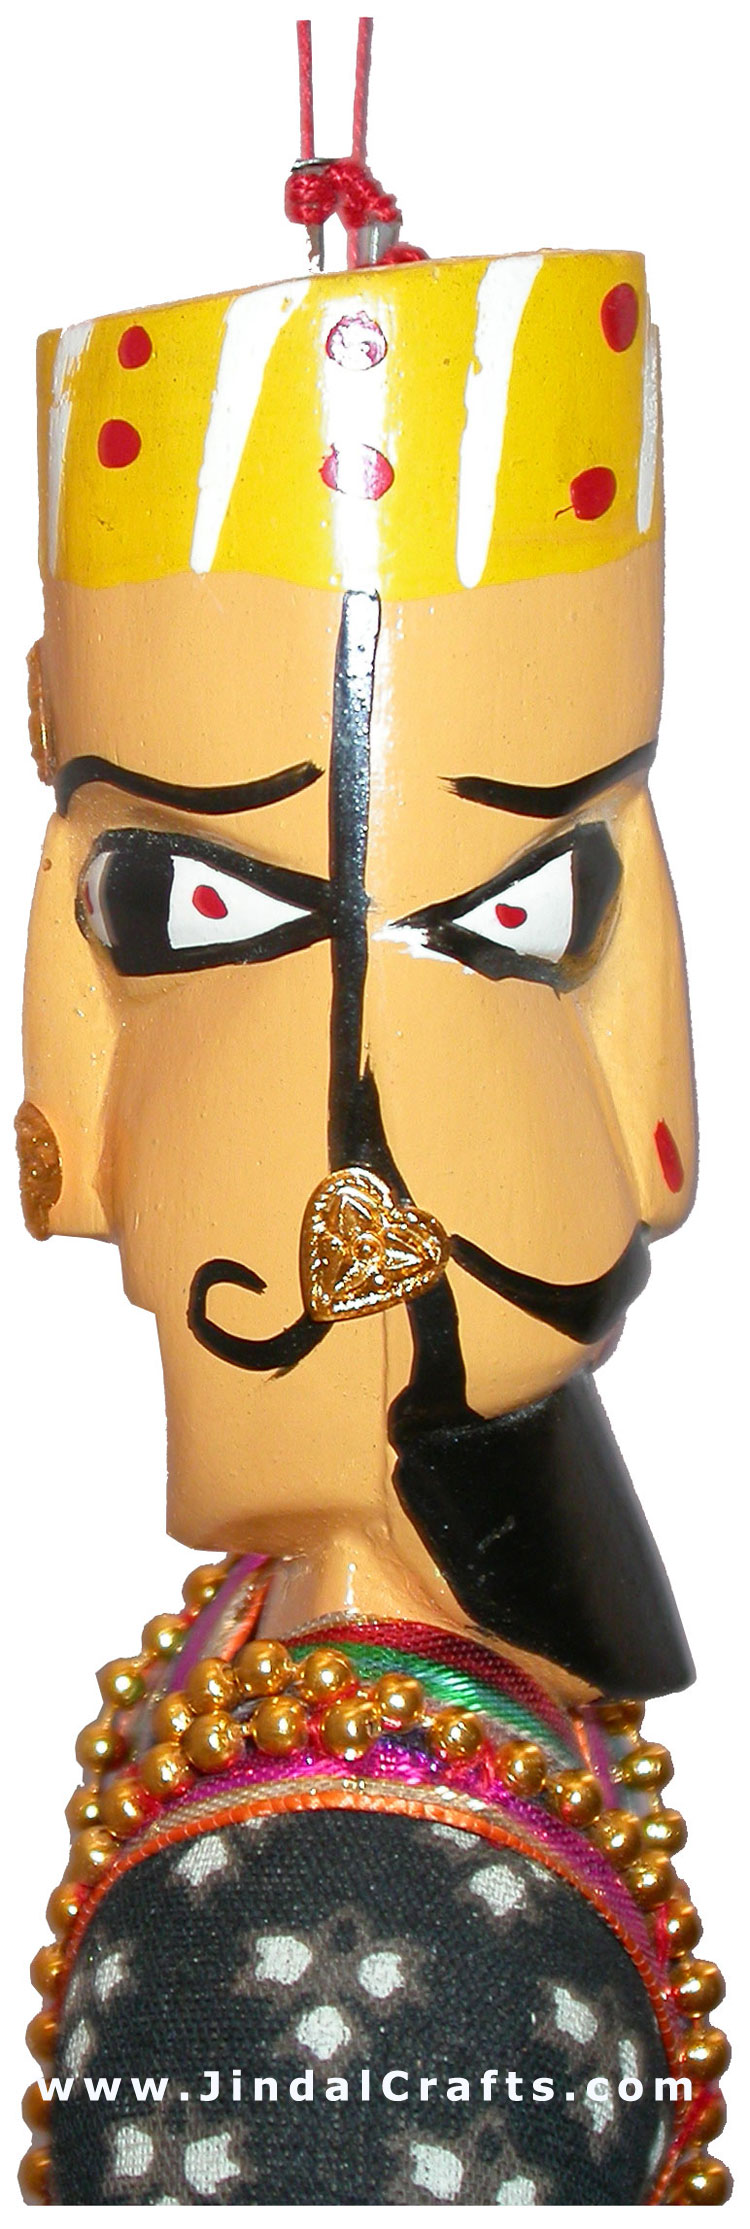 Handmade Double Face King - Queen Puppet India Folk Art